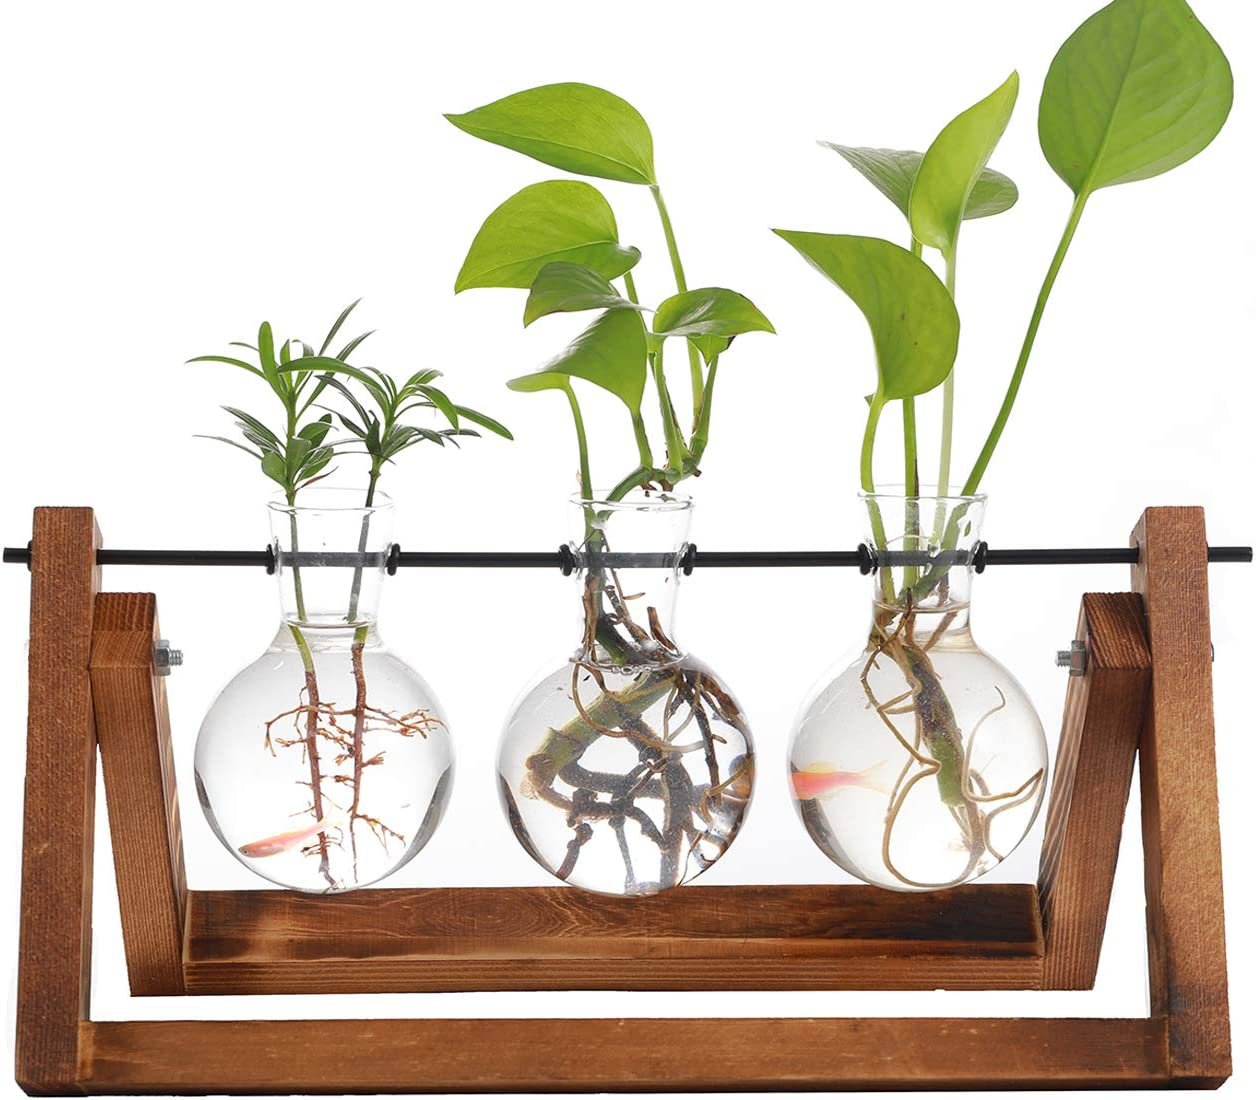 Iwtmm Office Plant Terrarium with Wooden Stand, Desktop Glass Planter Bulb Vase, Solid Air Retro Accessories for Hydroponics Plants Stand Holder Home Garden Wedding Decor (3 Bottle)